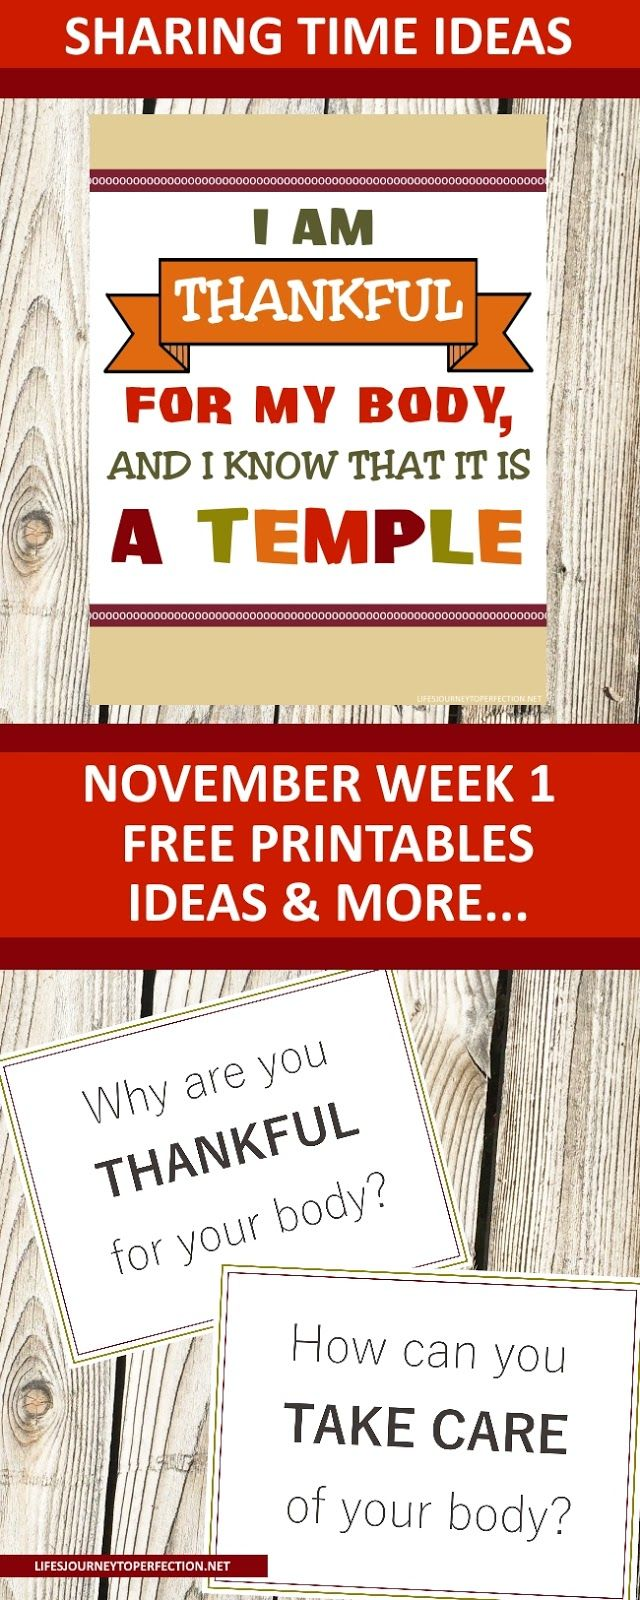 2018 Primary Sharing Time Ideas for November Week 1: I am thankful for my body, and I know that it is a temple